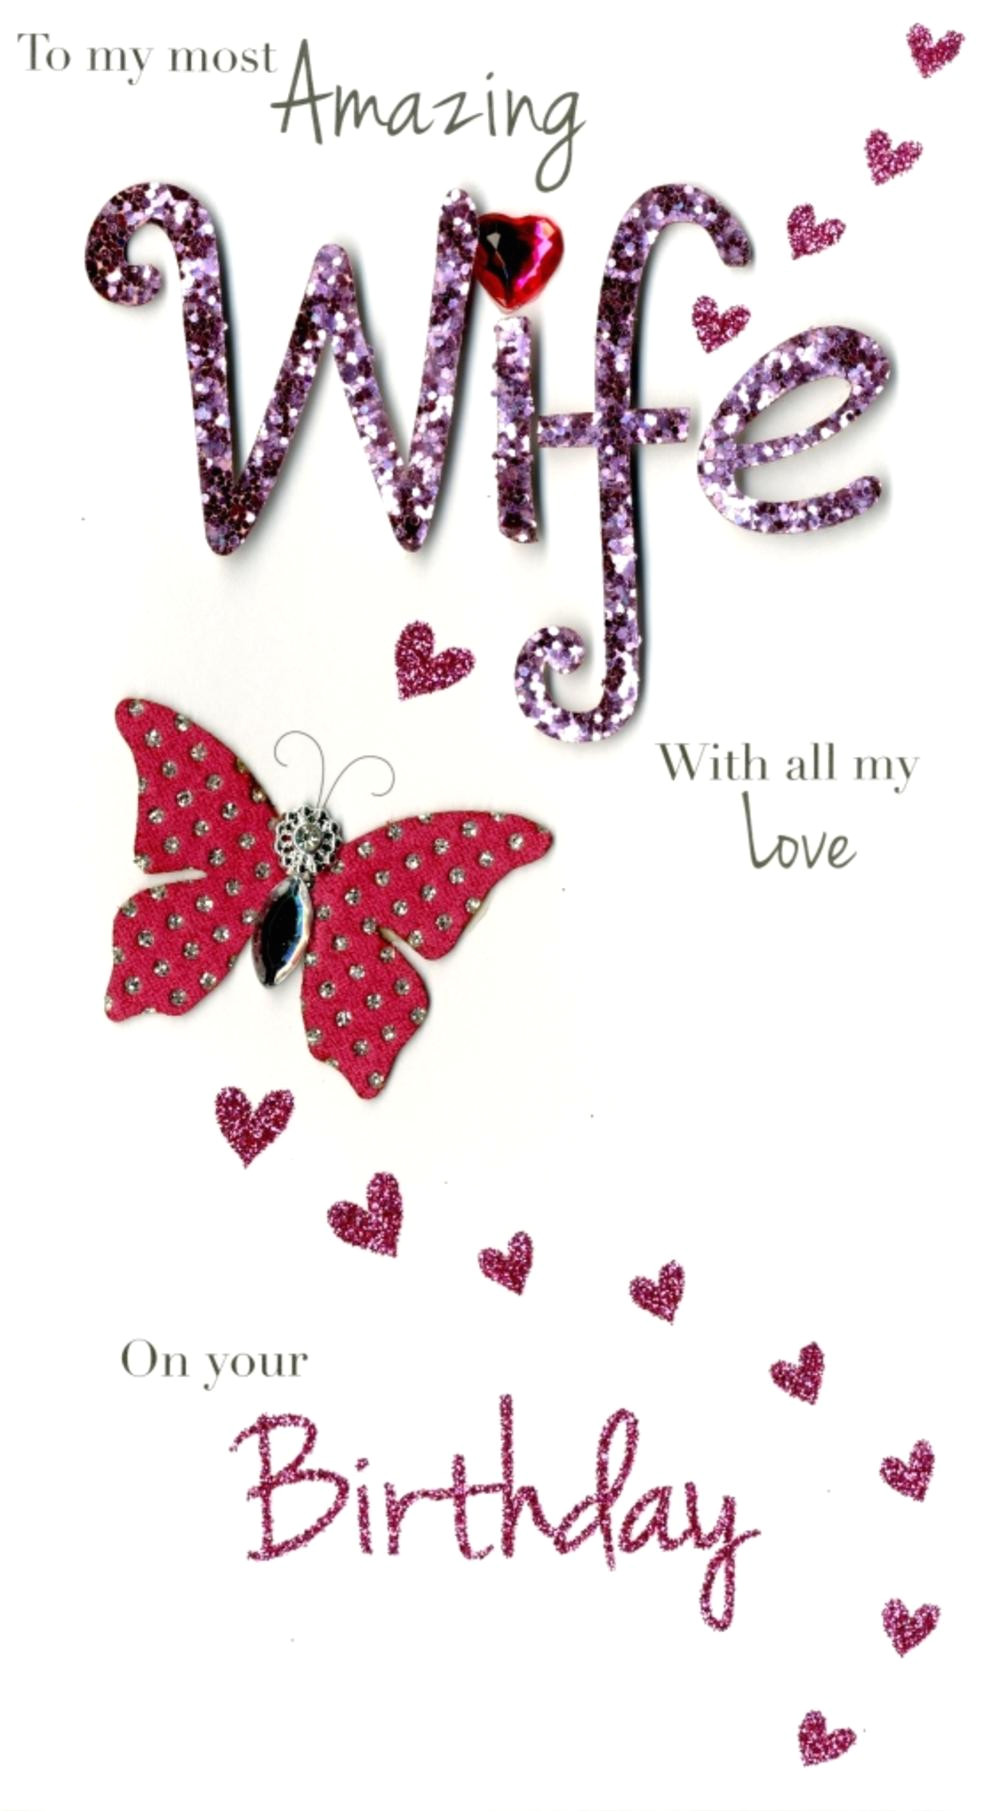 kcsnjgs459 amazing wife happy birthday greeting card hand finished cards